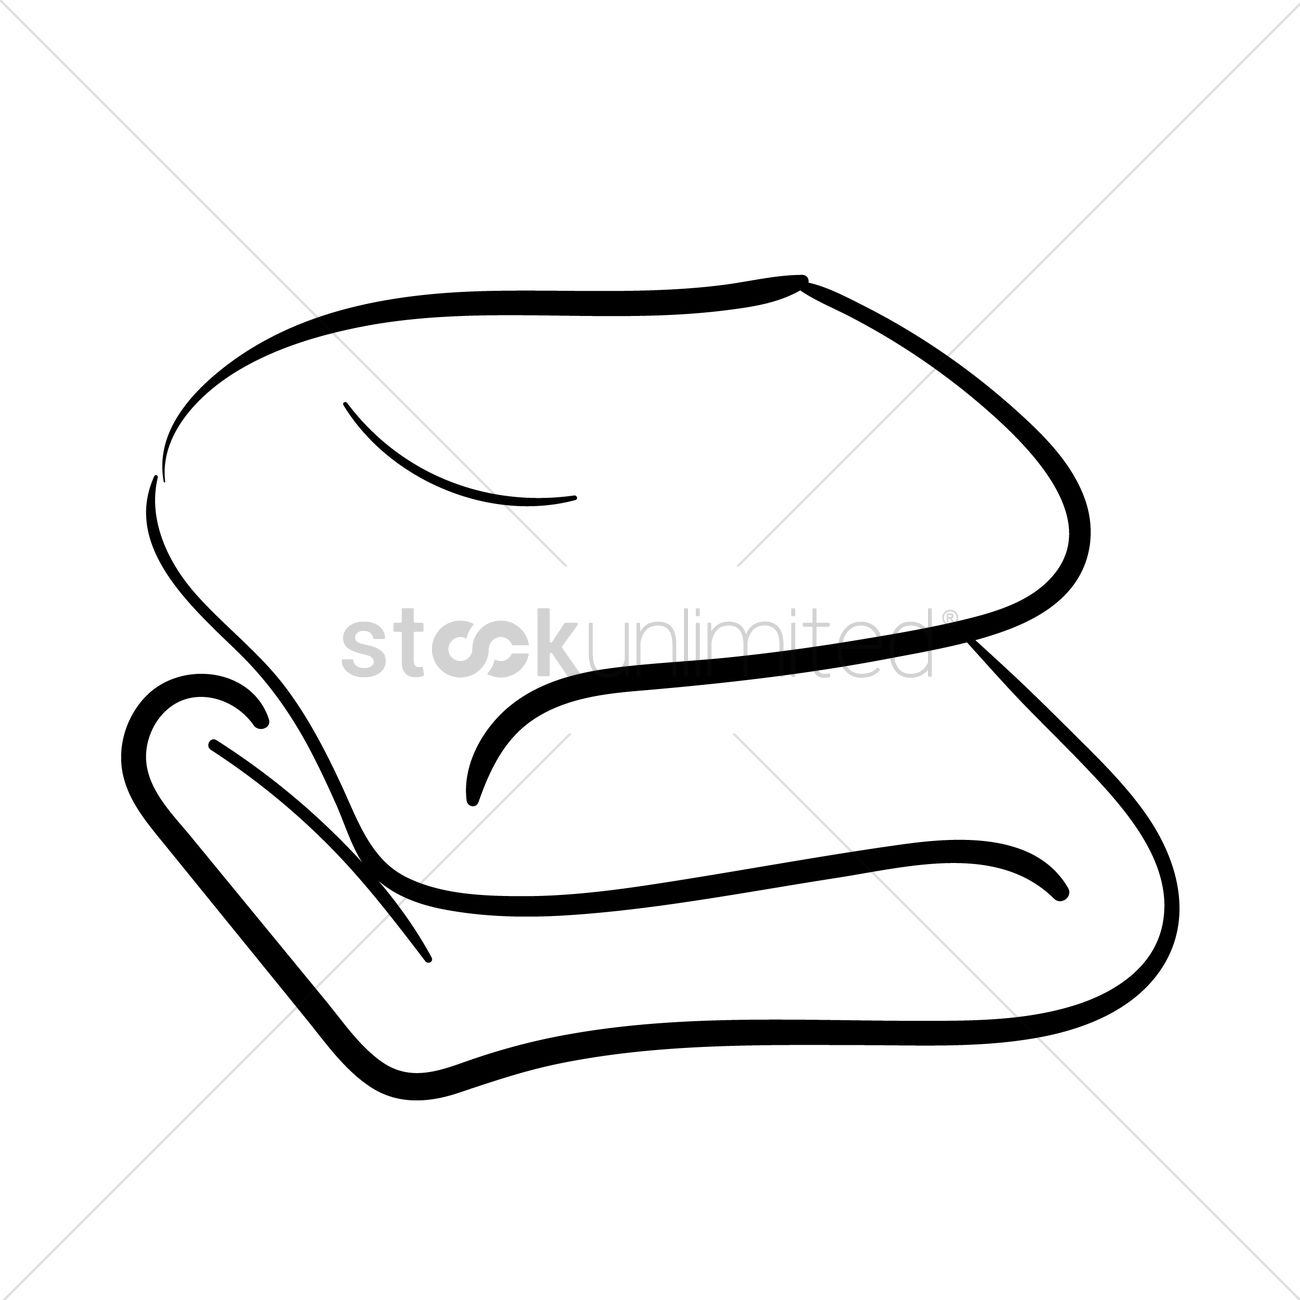 Folded Towel Vector Image